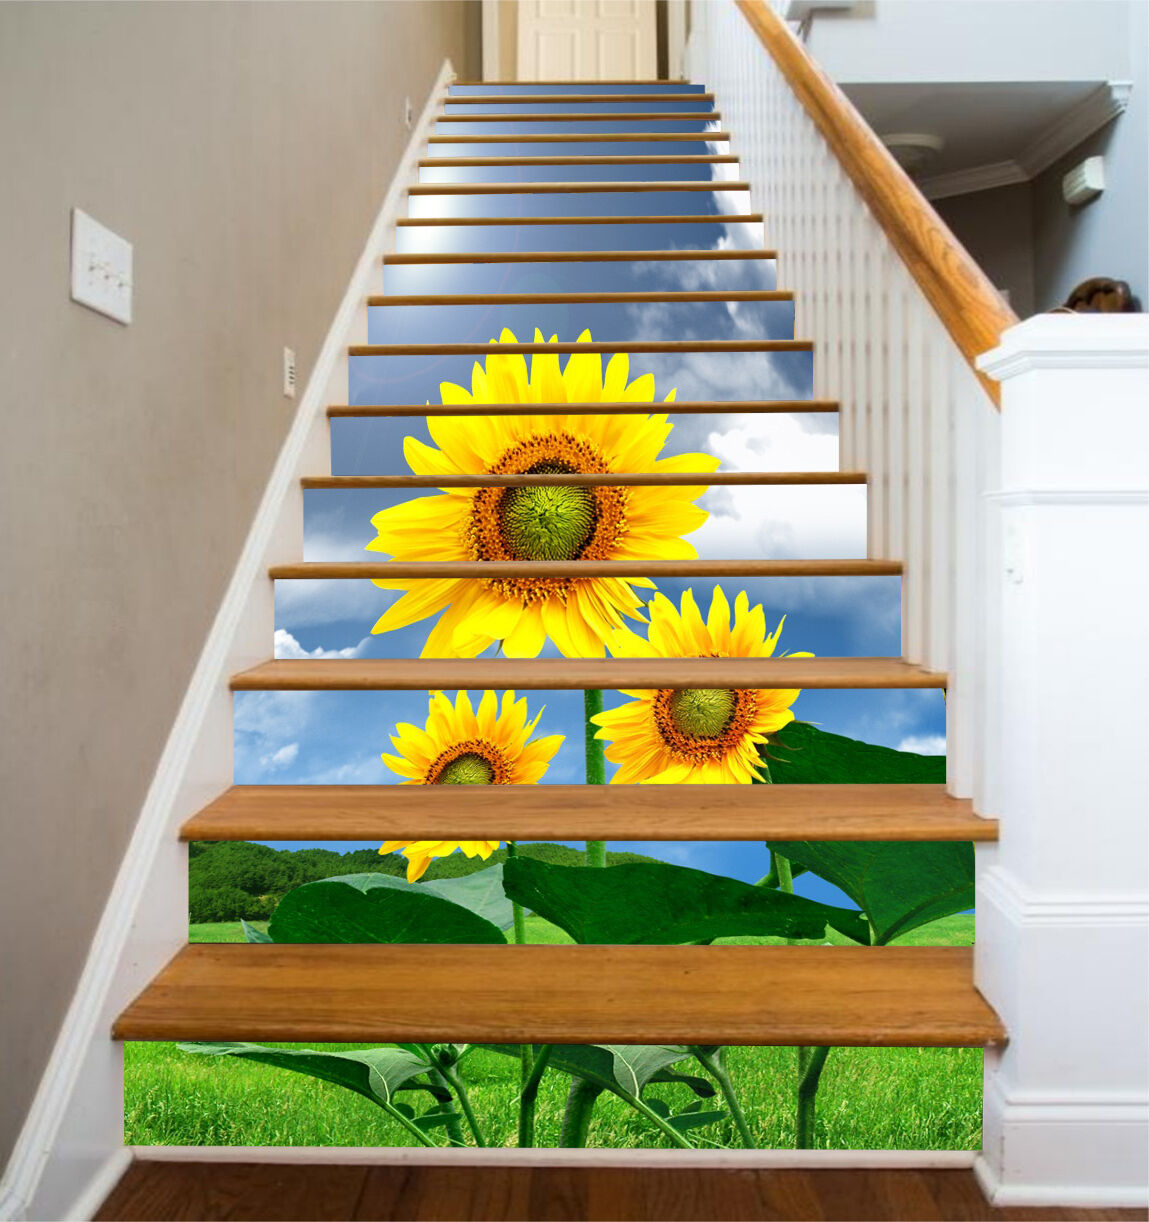 3D Sunflower 3664 Stair Risers Decoration Photo Mural Vinyl Decal Wallpaper AU